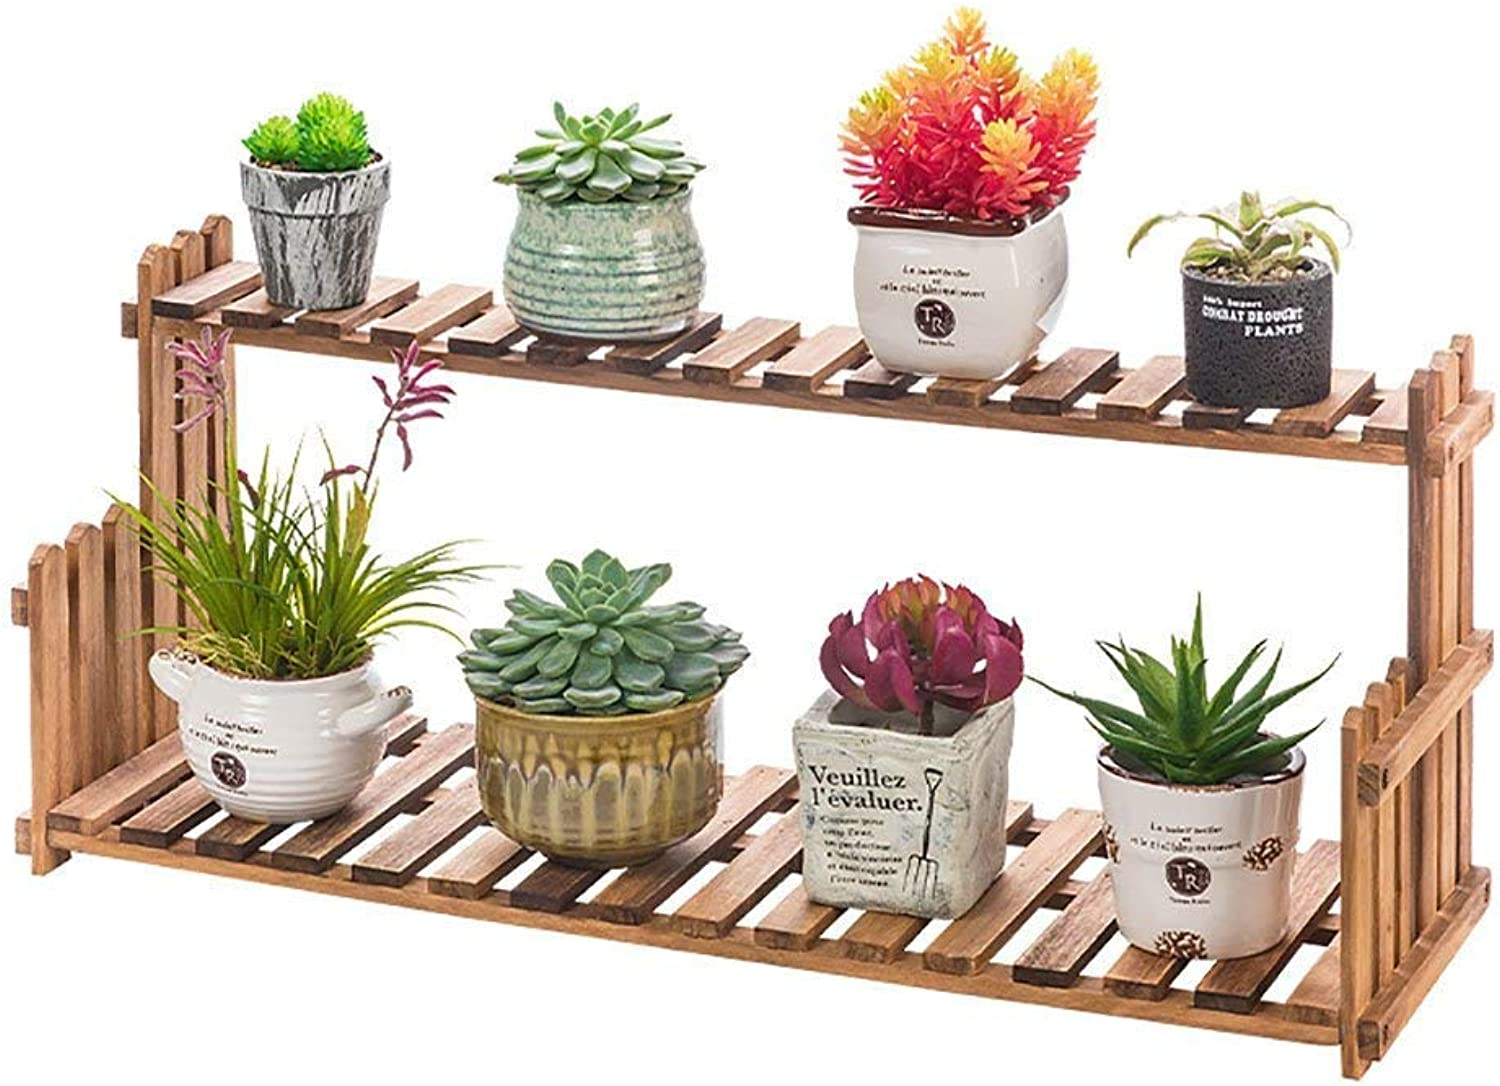 Gifts & Decor Plant Stand Shelf Indoor and Outdoor Decorative Shelf Living Room Plant Space Saving Flower Pot Holder Solid Wood Planter Ladder Flower Pot Stand Plant Display Shelf Herb Rack Backyard